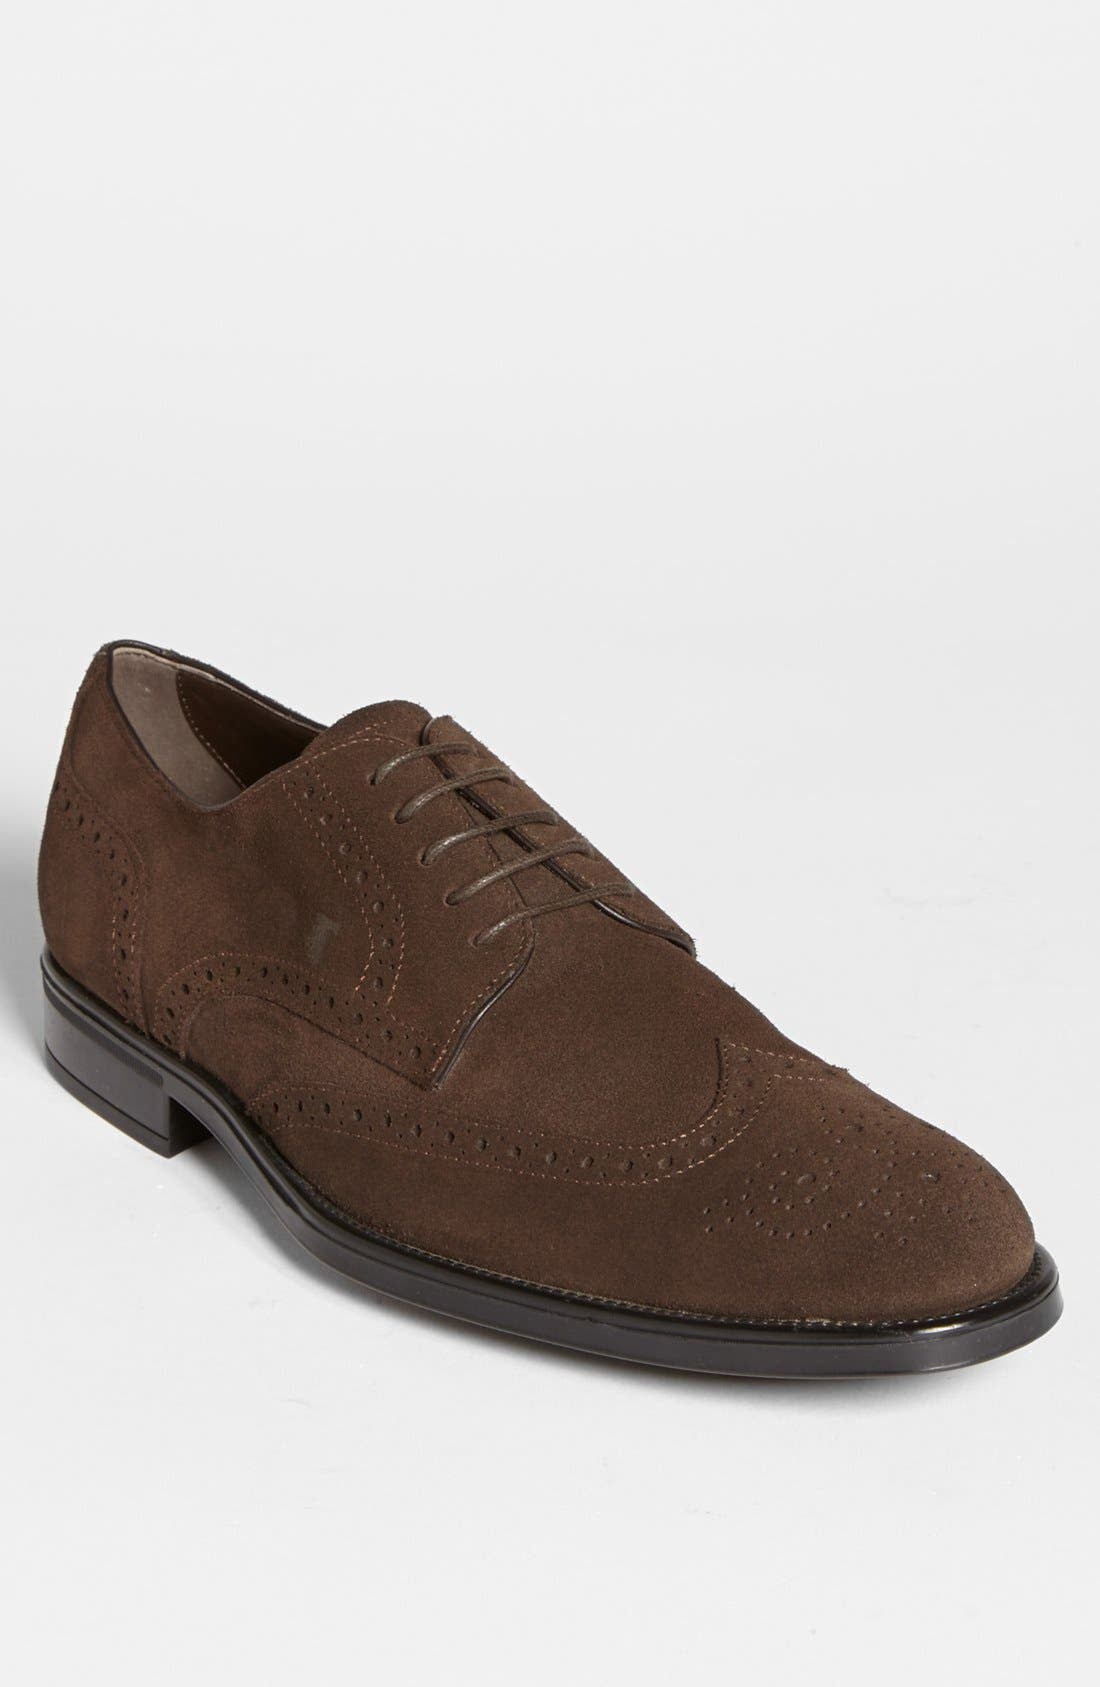 Alternate Image 1 Selected - Tod's 'Derby' Suede Wingtip